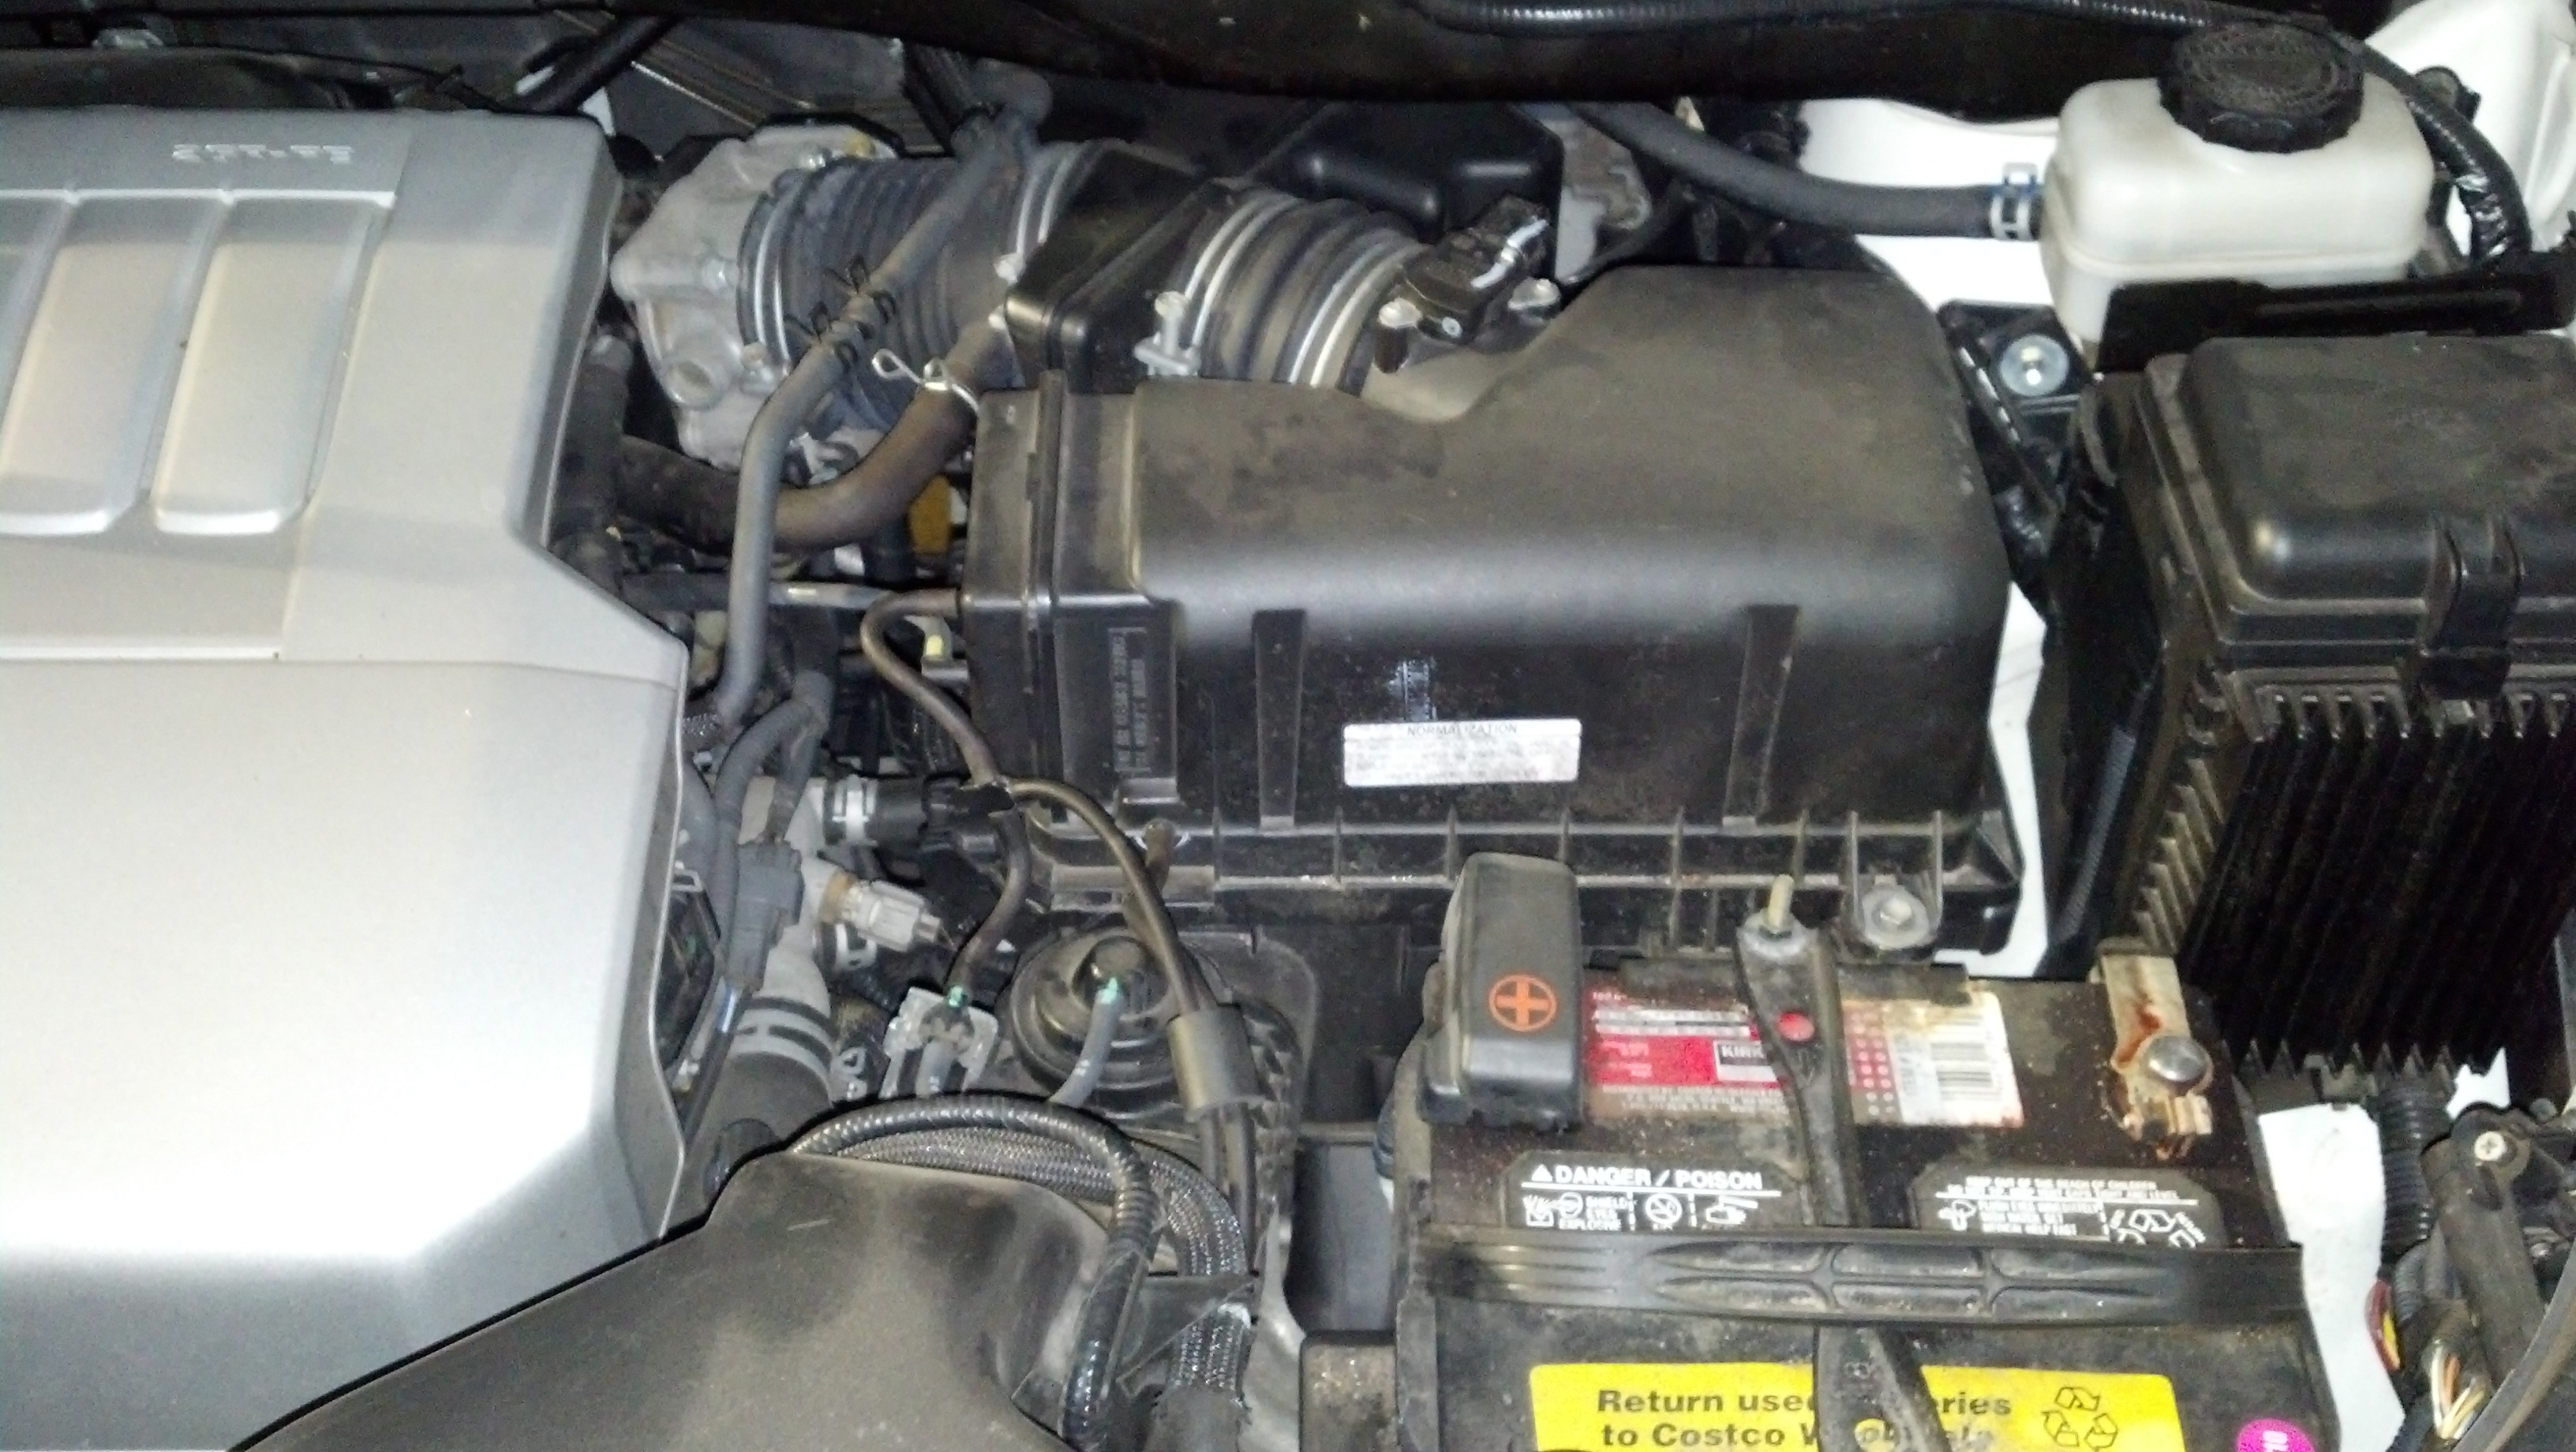 2007 Lexus RX 350 has check engine light and vsc lights lit